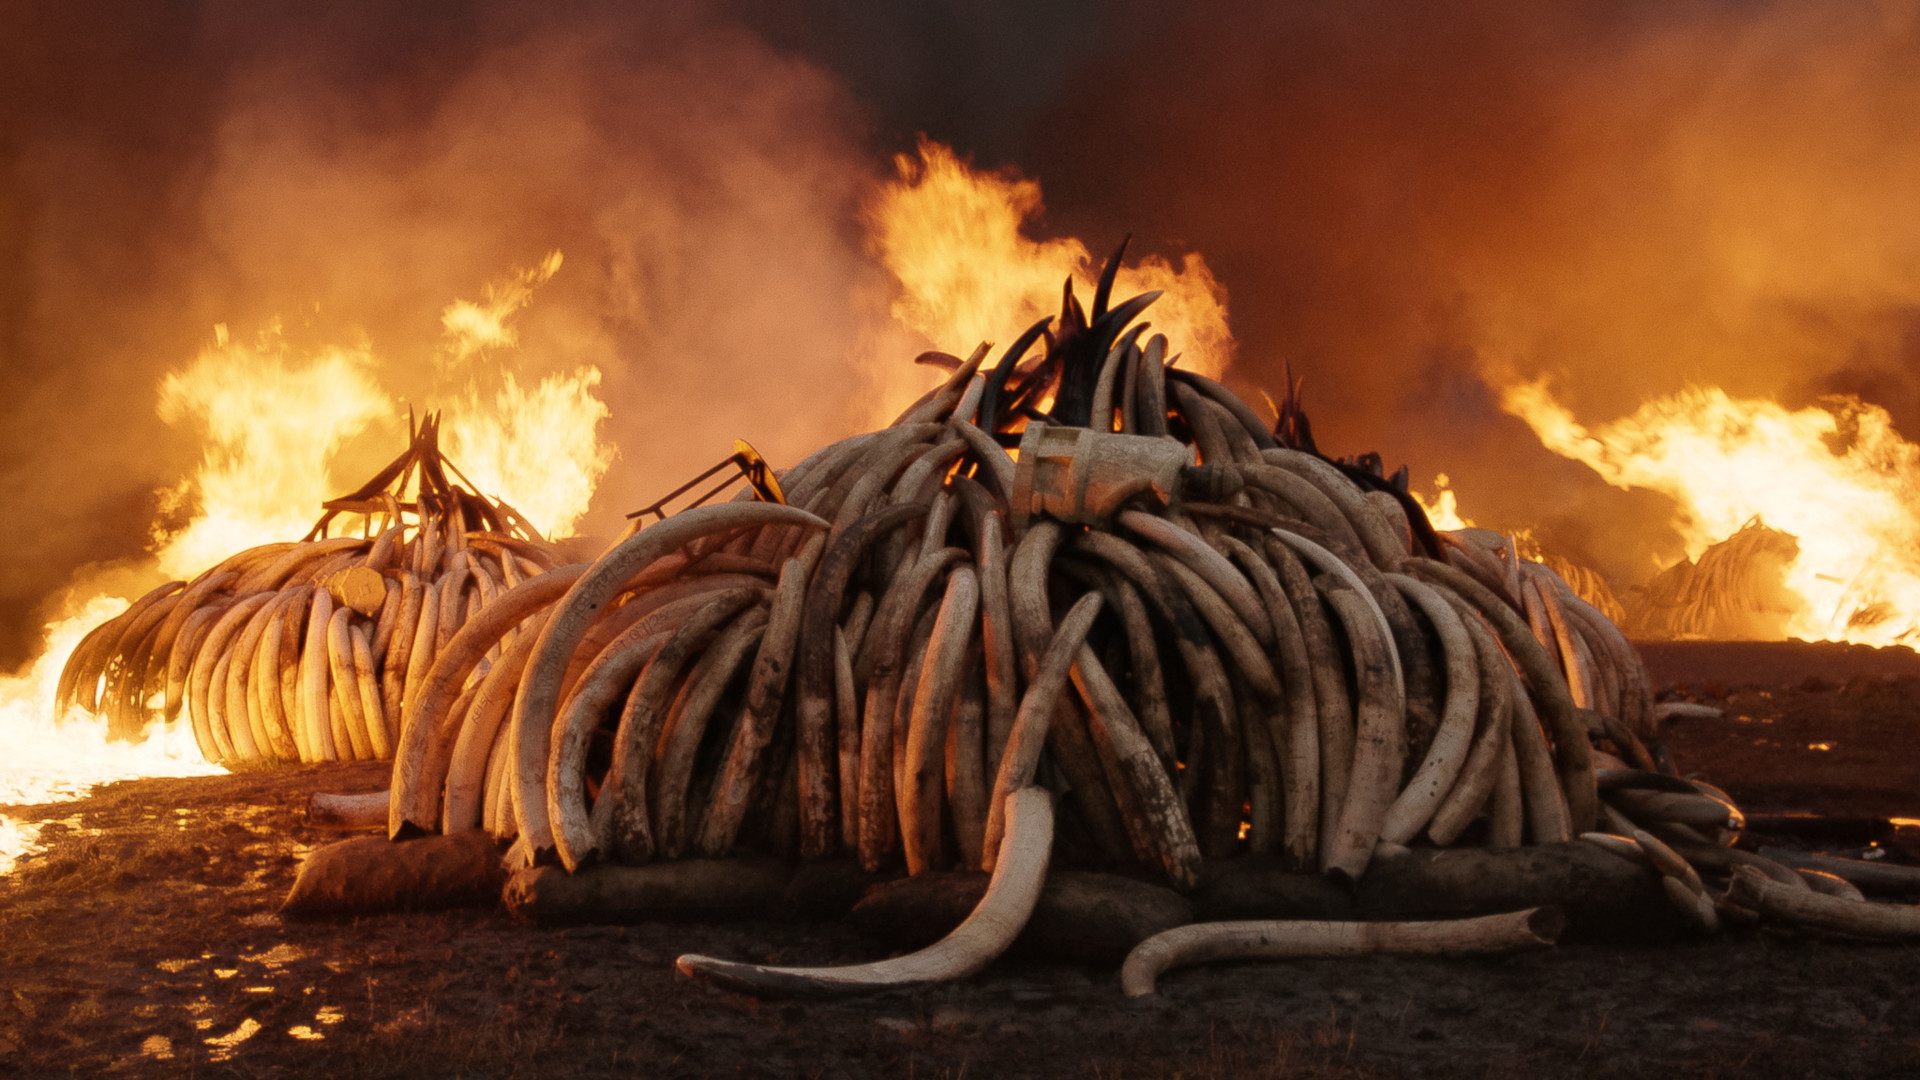 tusks burning